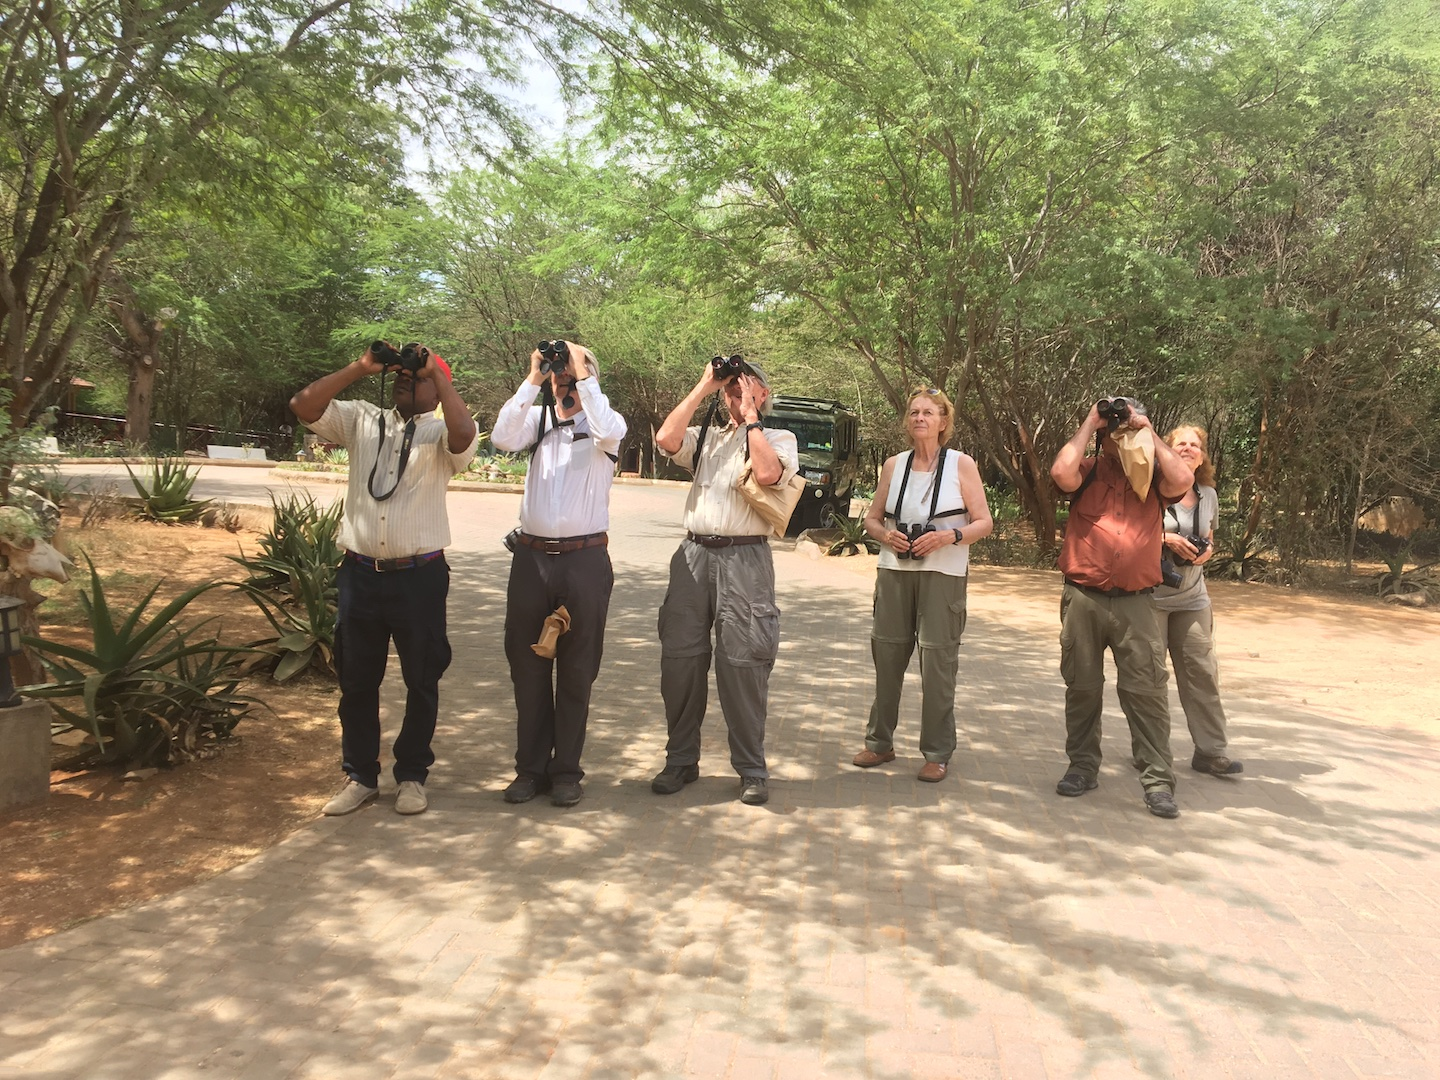 L-R: Driver Maxwell, Denis, Nicholas, Carolyn, Mitch and Sonny from USA at Aruba Camp, Tsavo East during a 21-day birding trip in February 2019